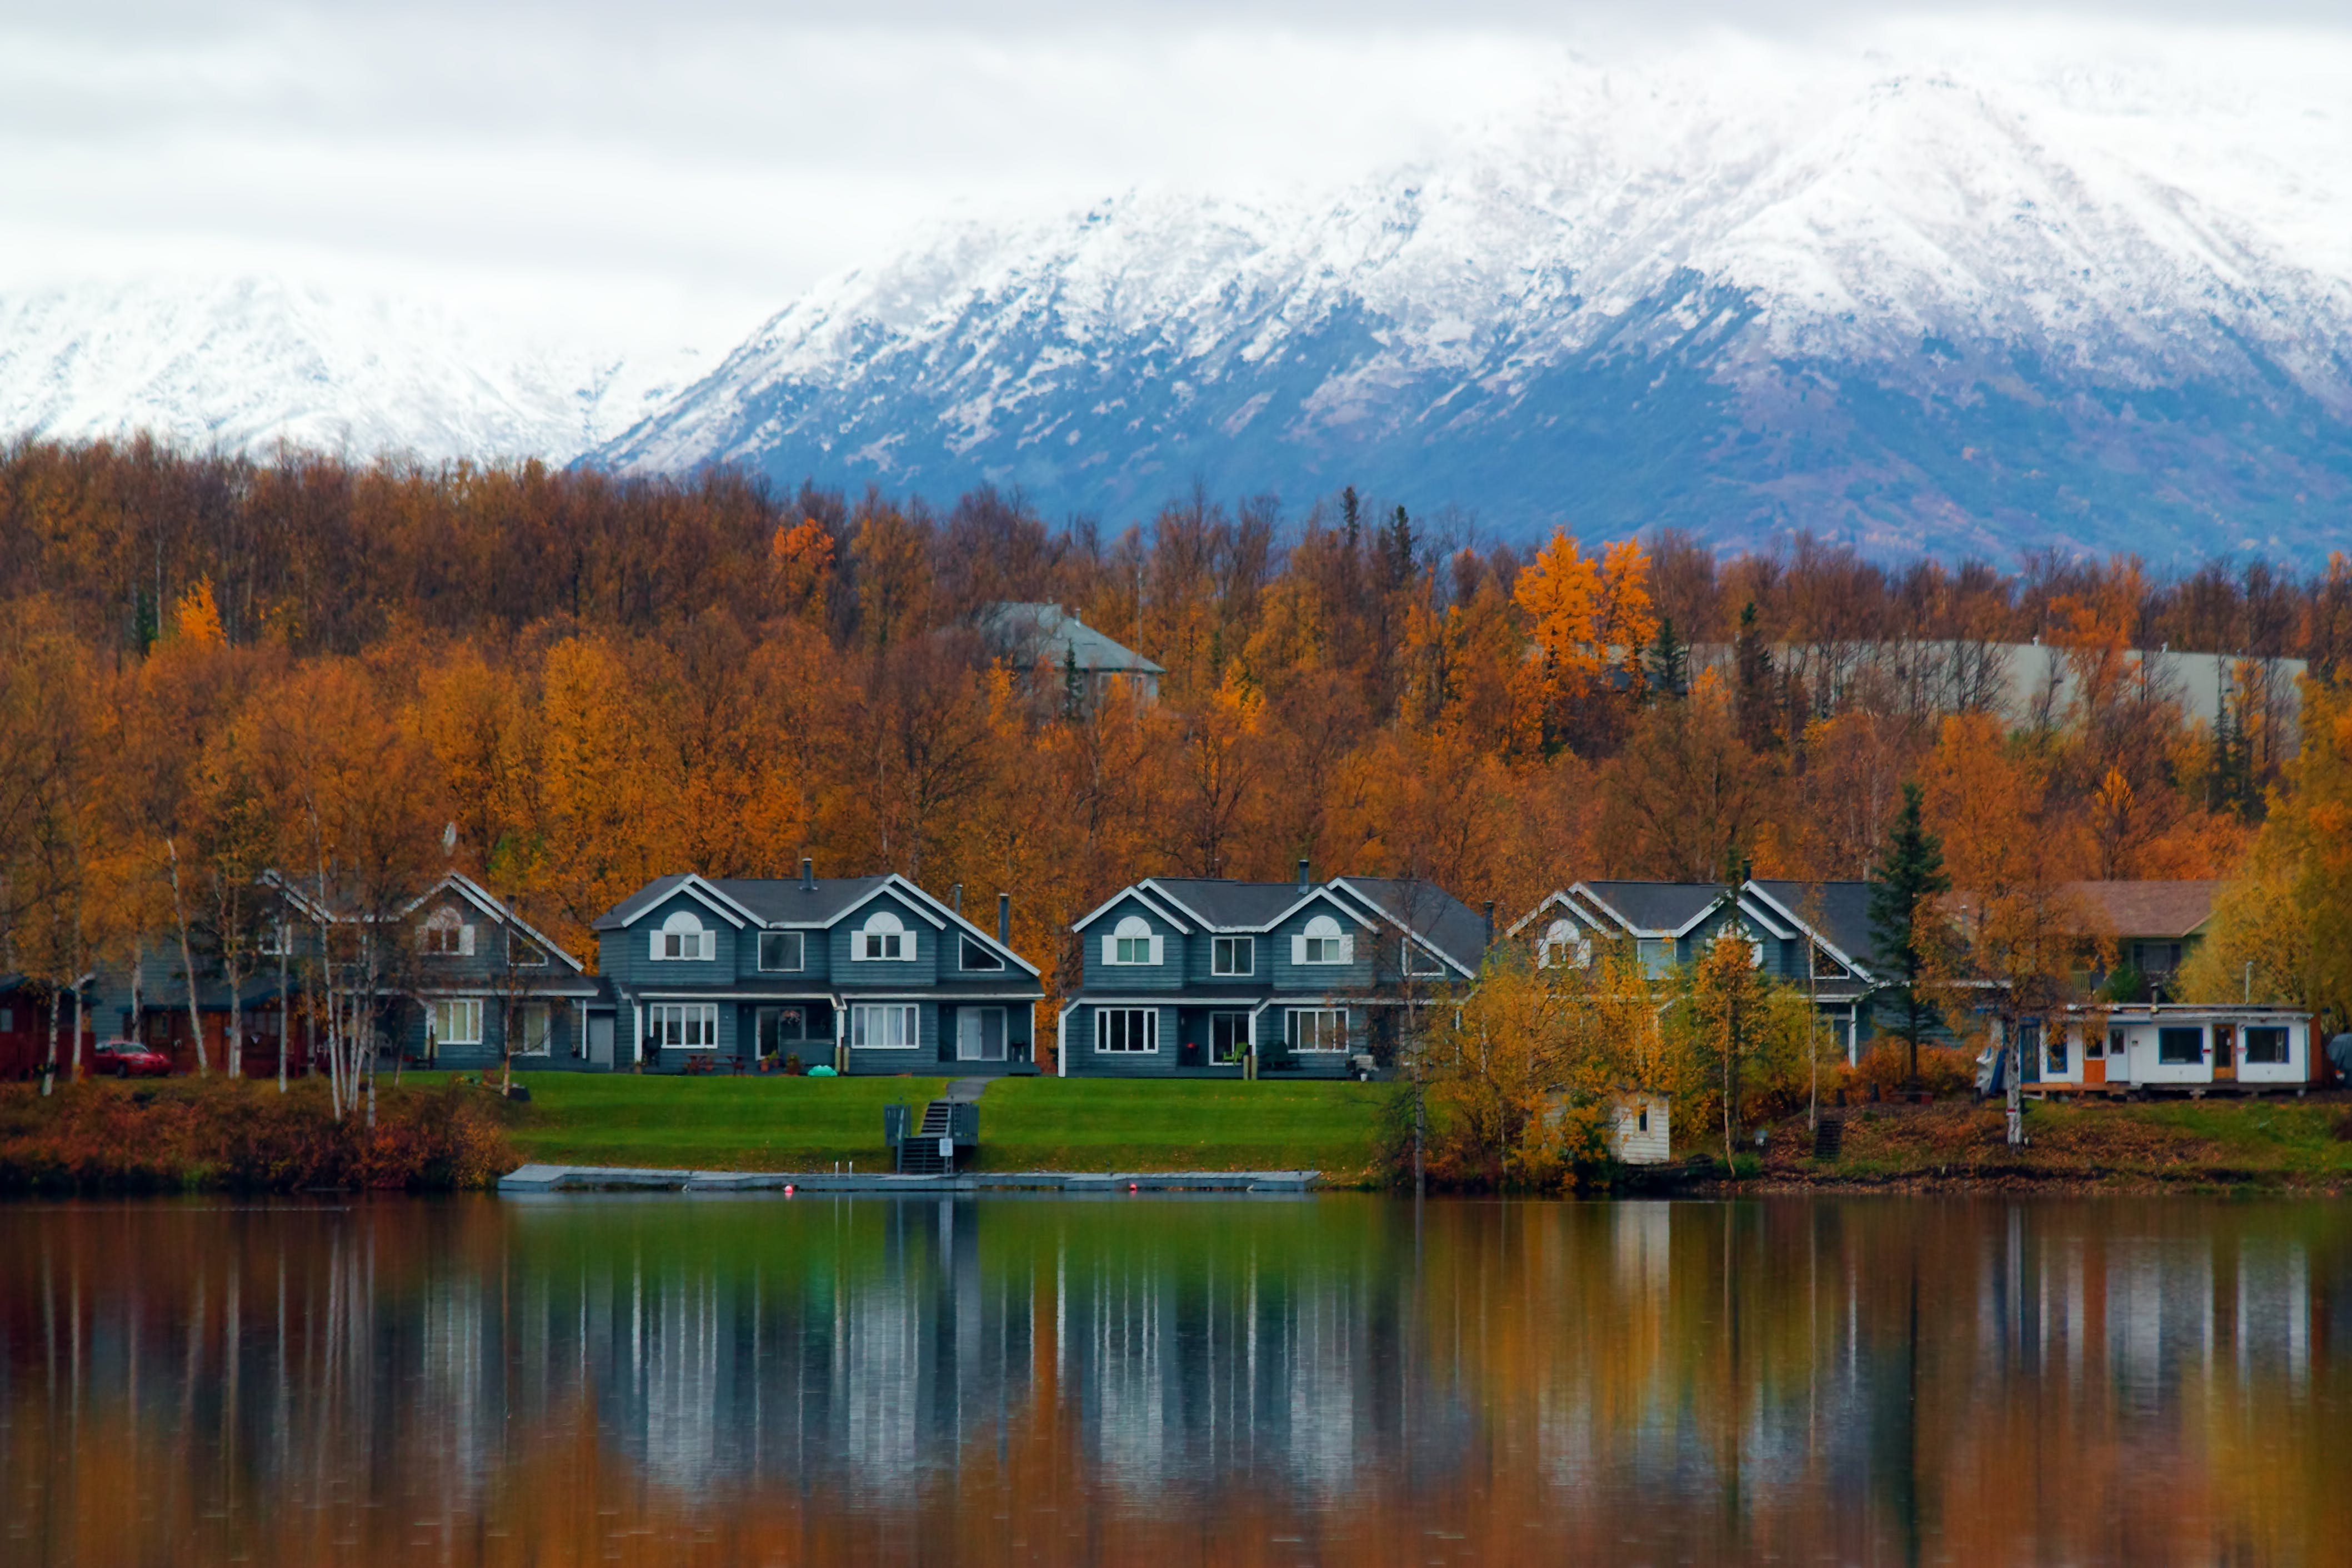 The 20 Best Little Lake Towns in America - PureWow